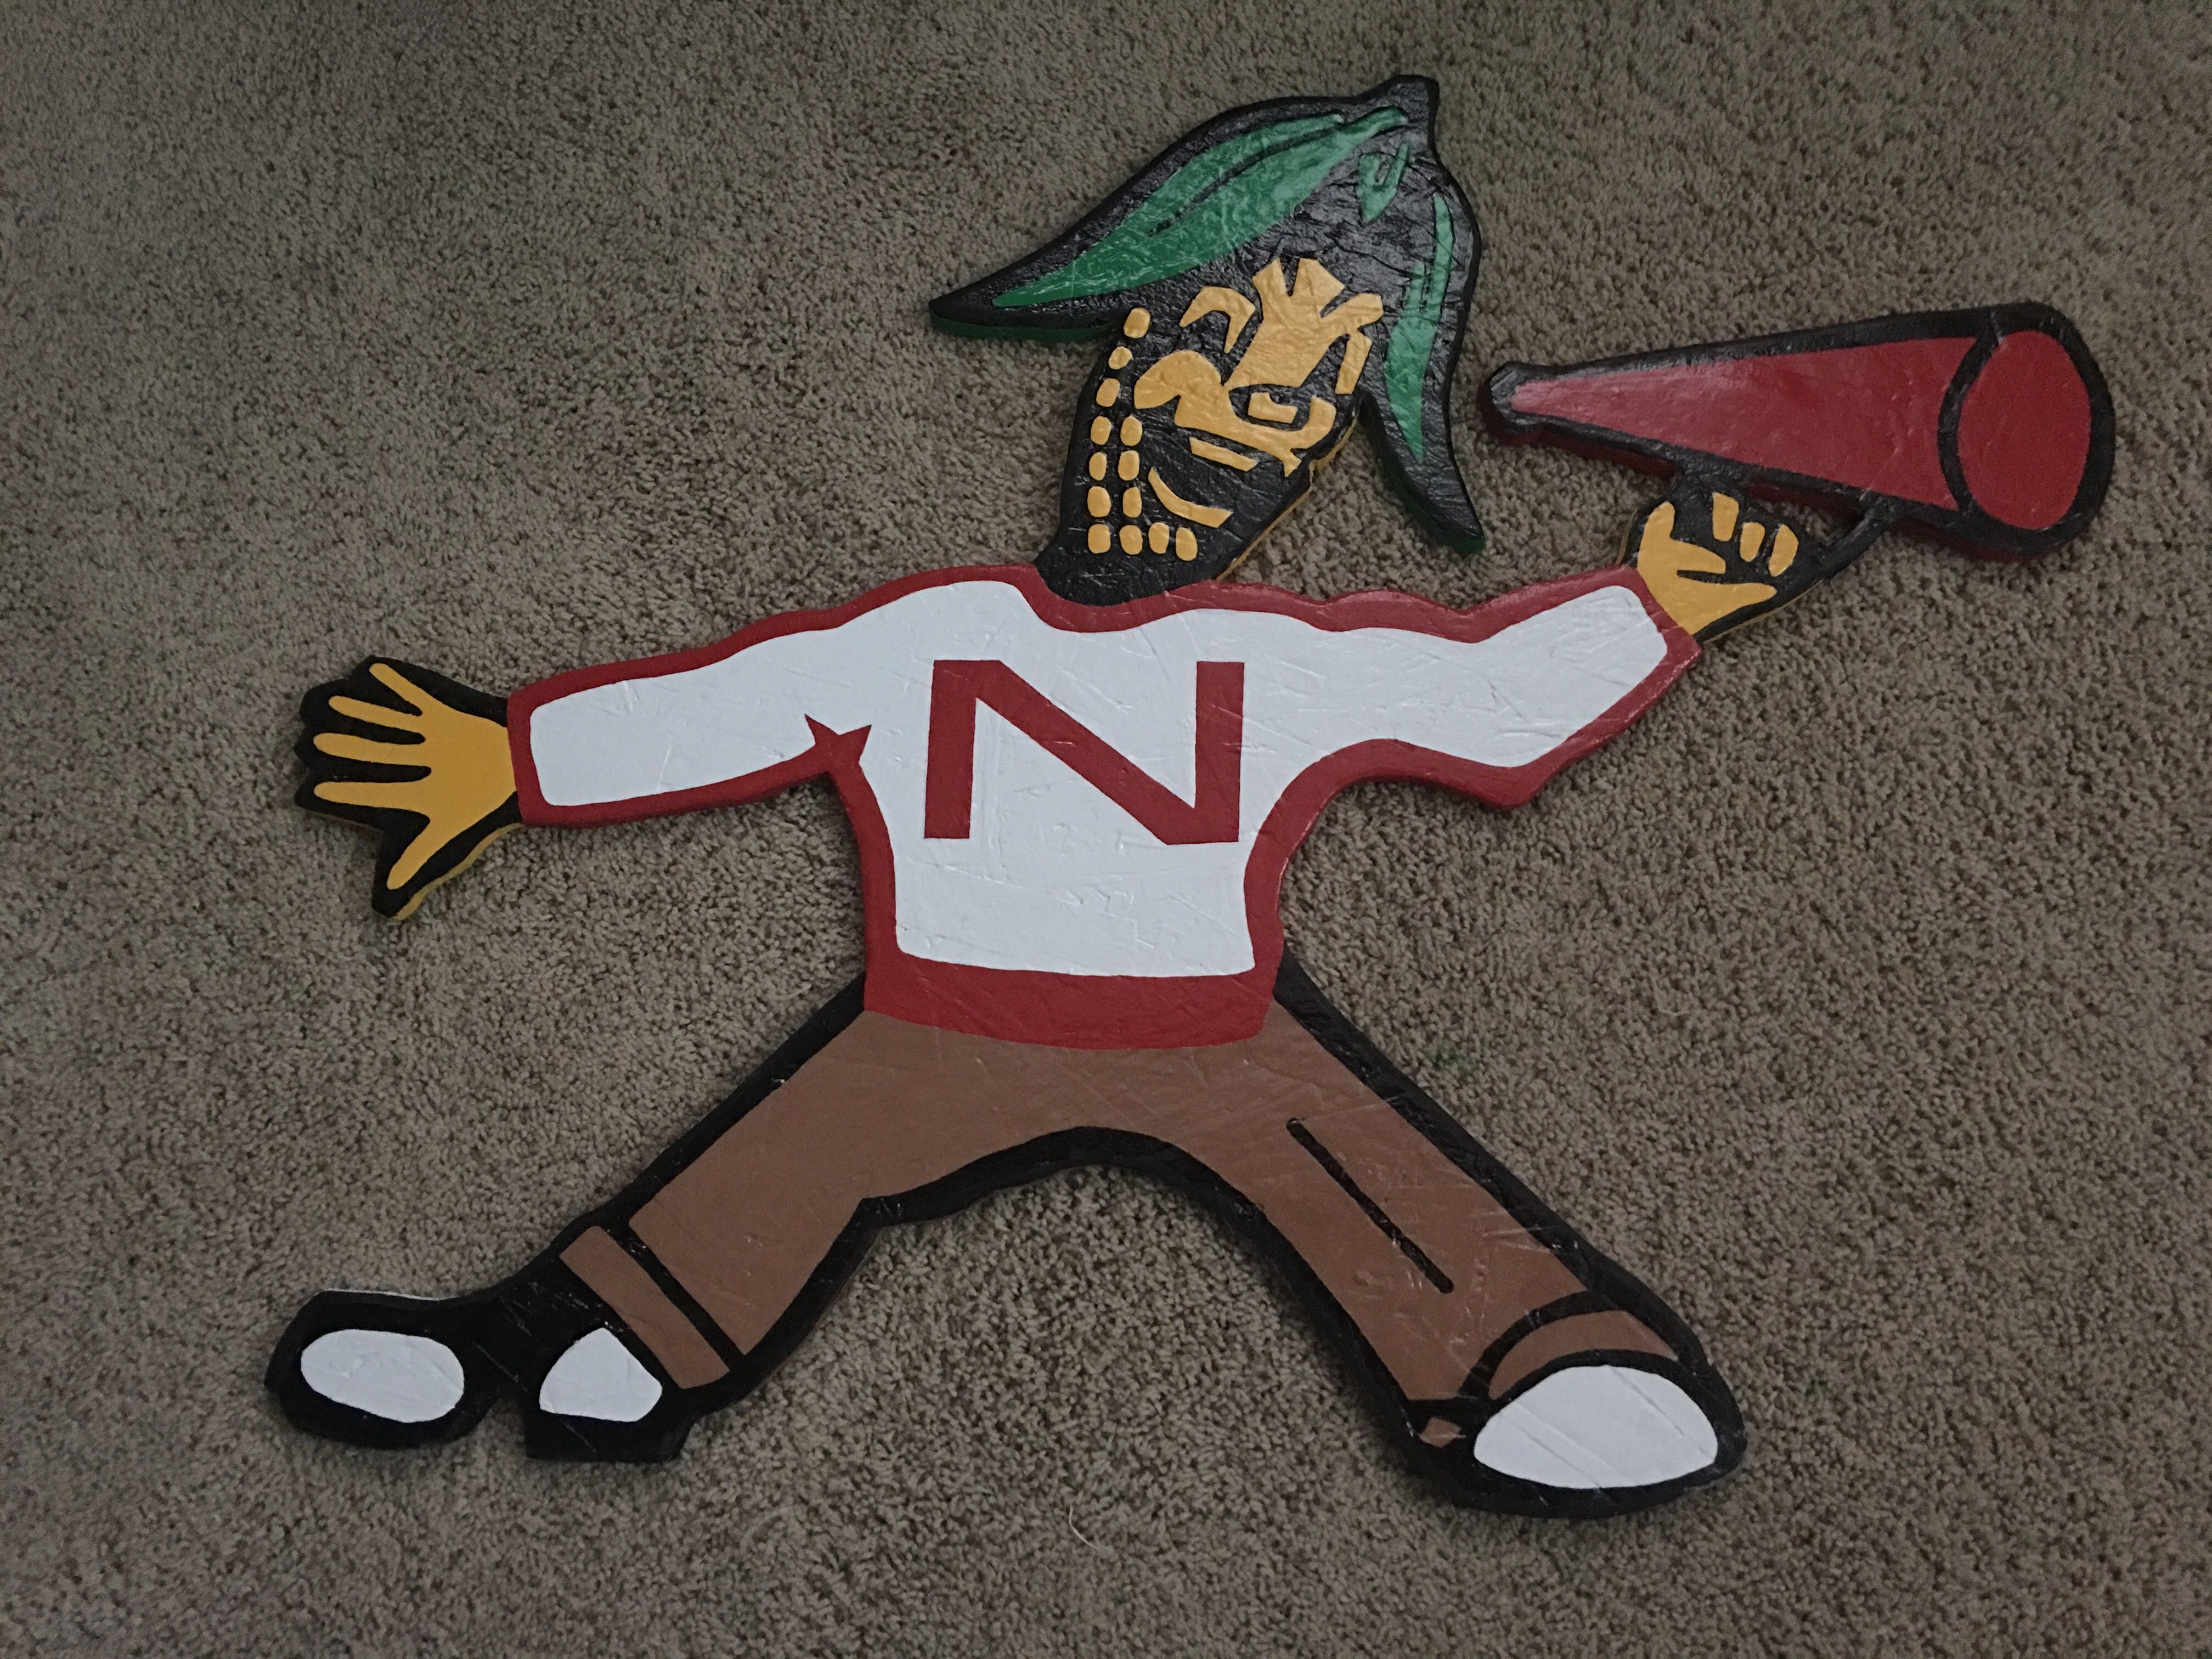 This is my rendition of Johnny Cornhusker. A mascot used by Nebraska in the 50s and 60s. Go Big Red! Huskers sign logo